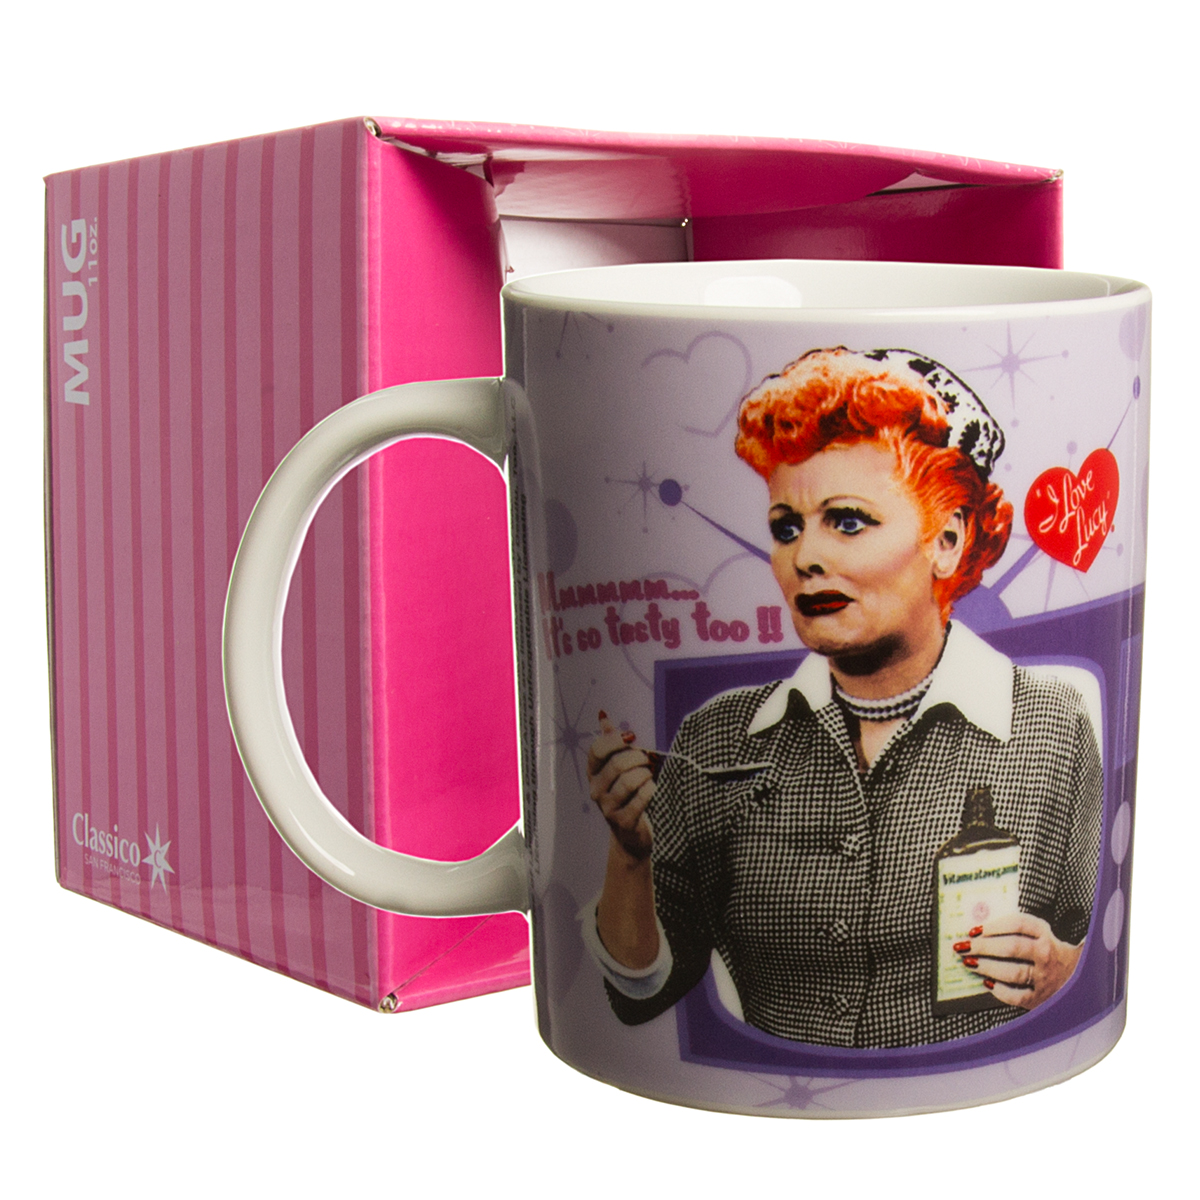 I Love Lucy Vitameatavegamin Funny 11oz Ceramic Coffee Mug Tea Cup In Gift Box Funny Humorous Round Unique Novelty